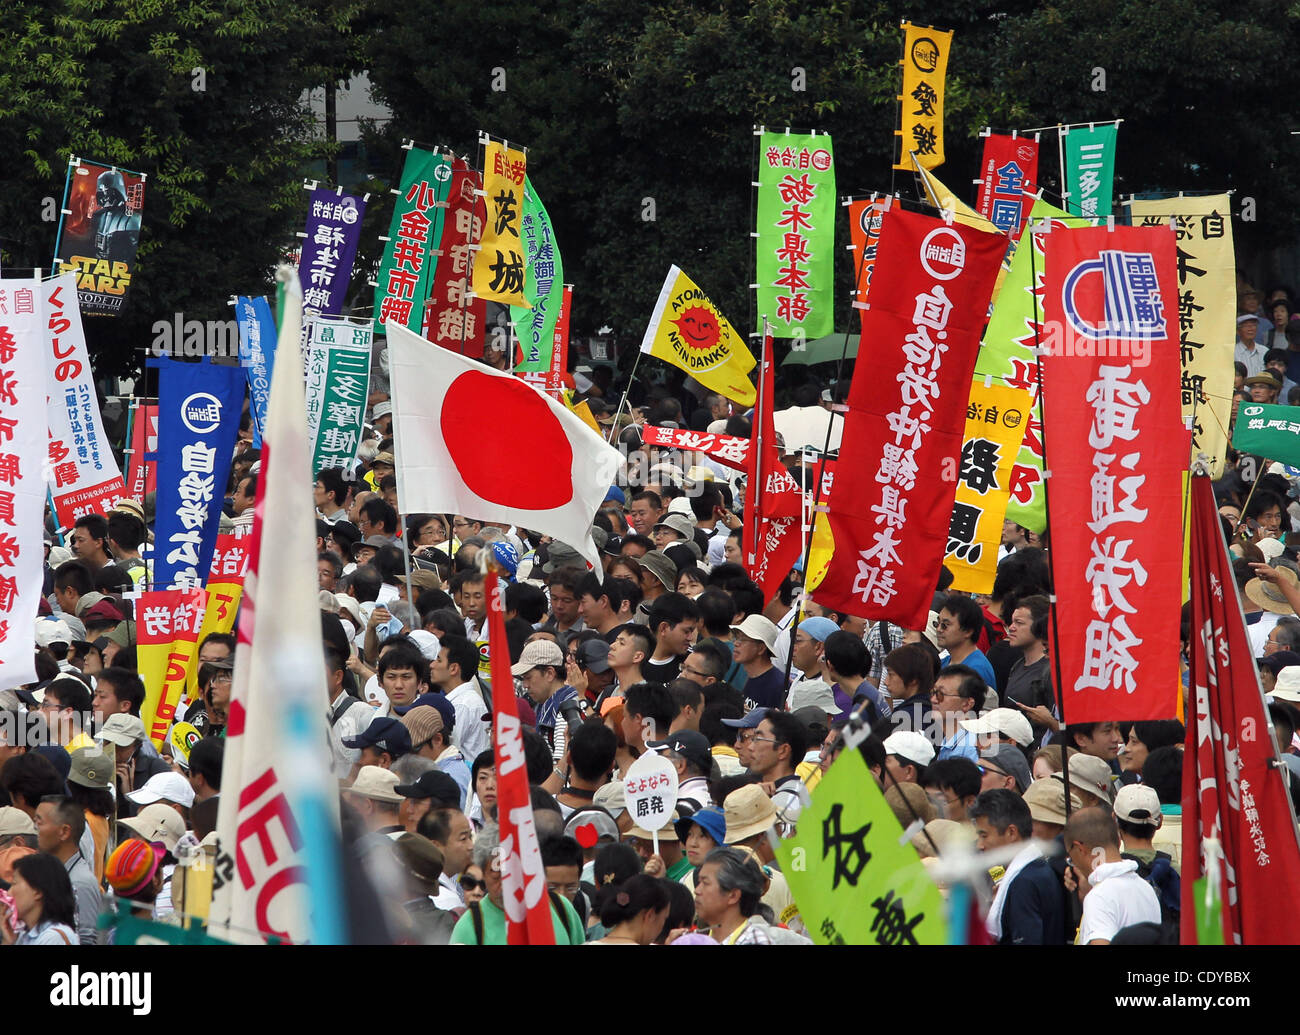 Sept. 19, 2011 - Tokyo, Japan - Thousands of people attend an anti-nuclear power demonstration 'NO NUKES MORE - Stock Image